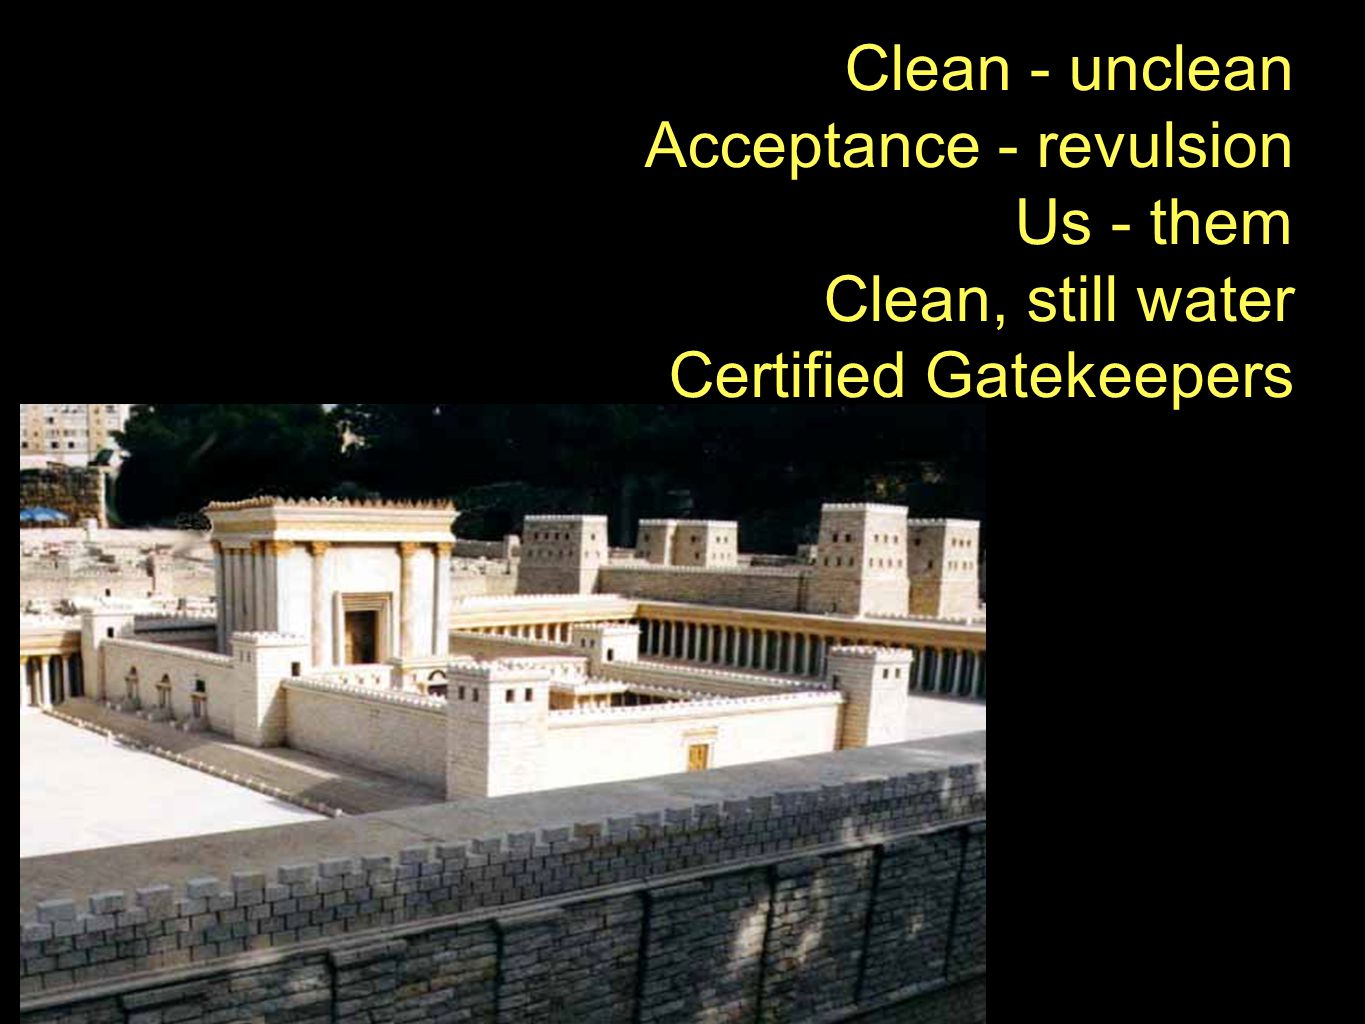 Clean - unclean Acceptance - revulsion Us - them Clean, still water Certified Gatekeepers